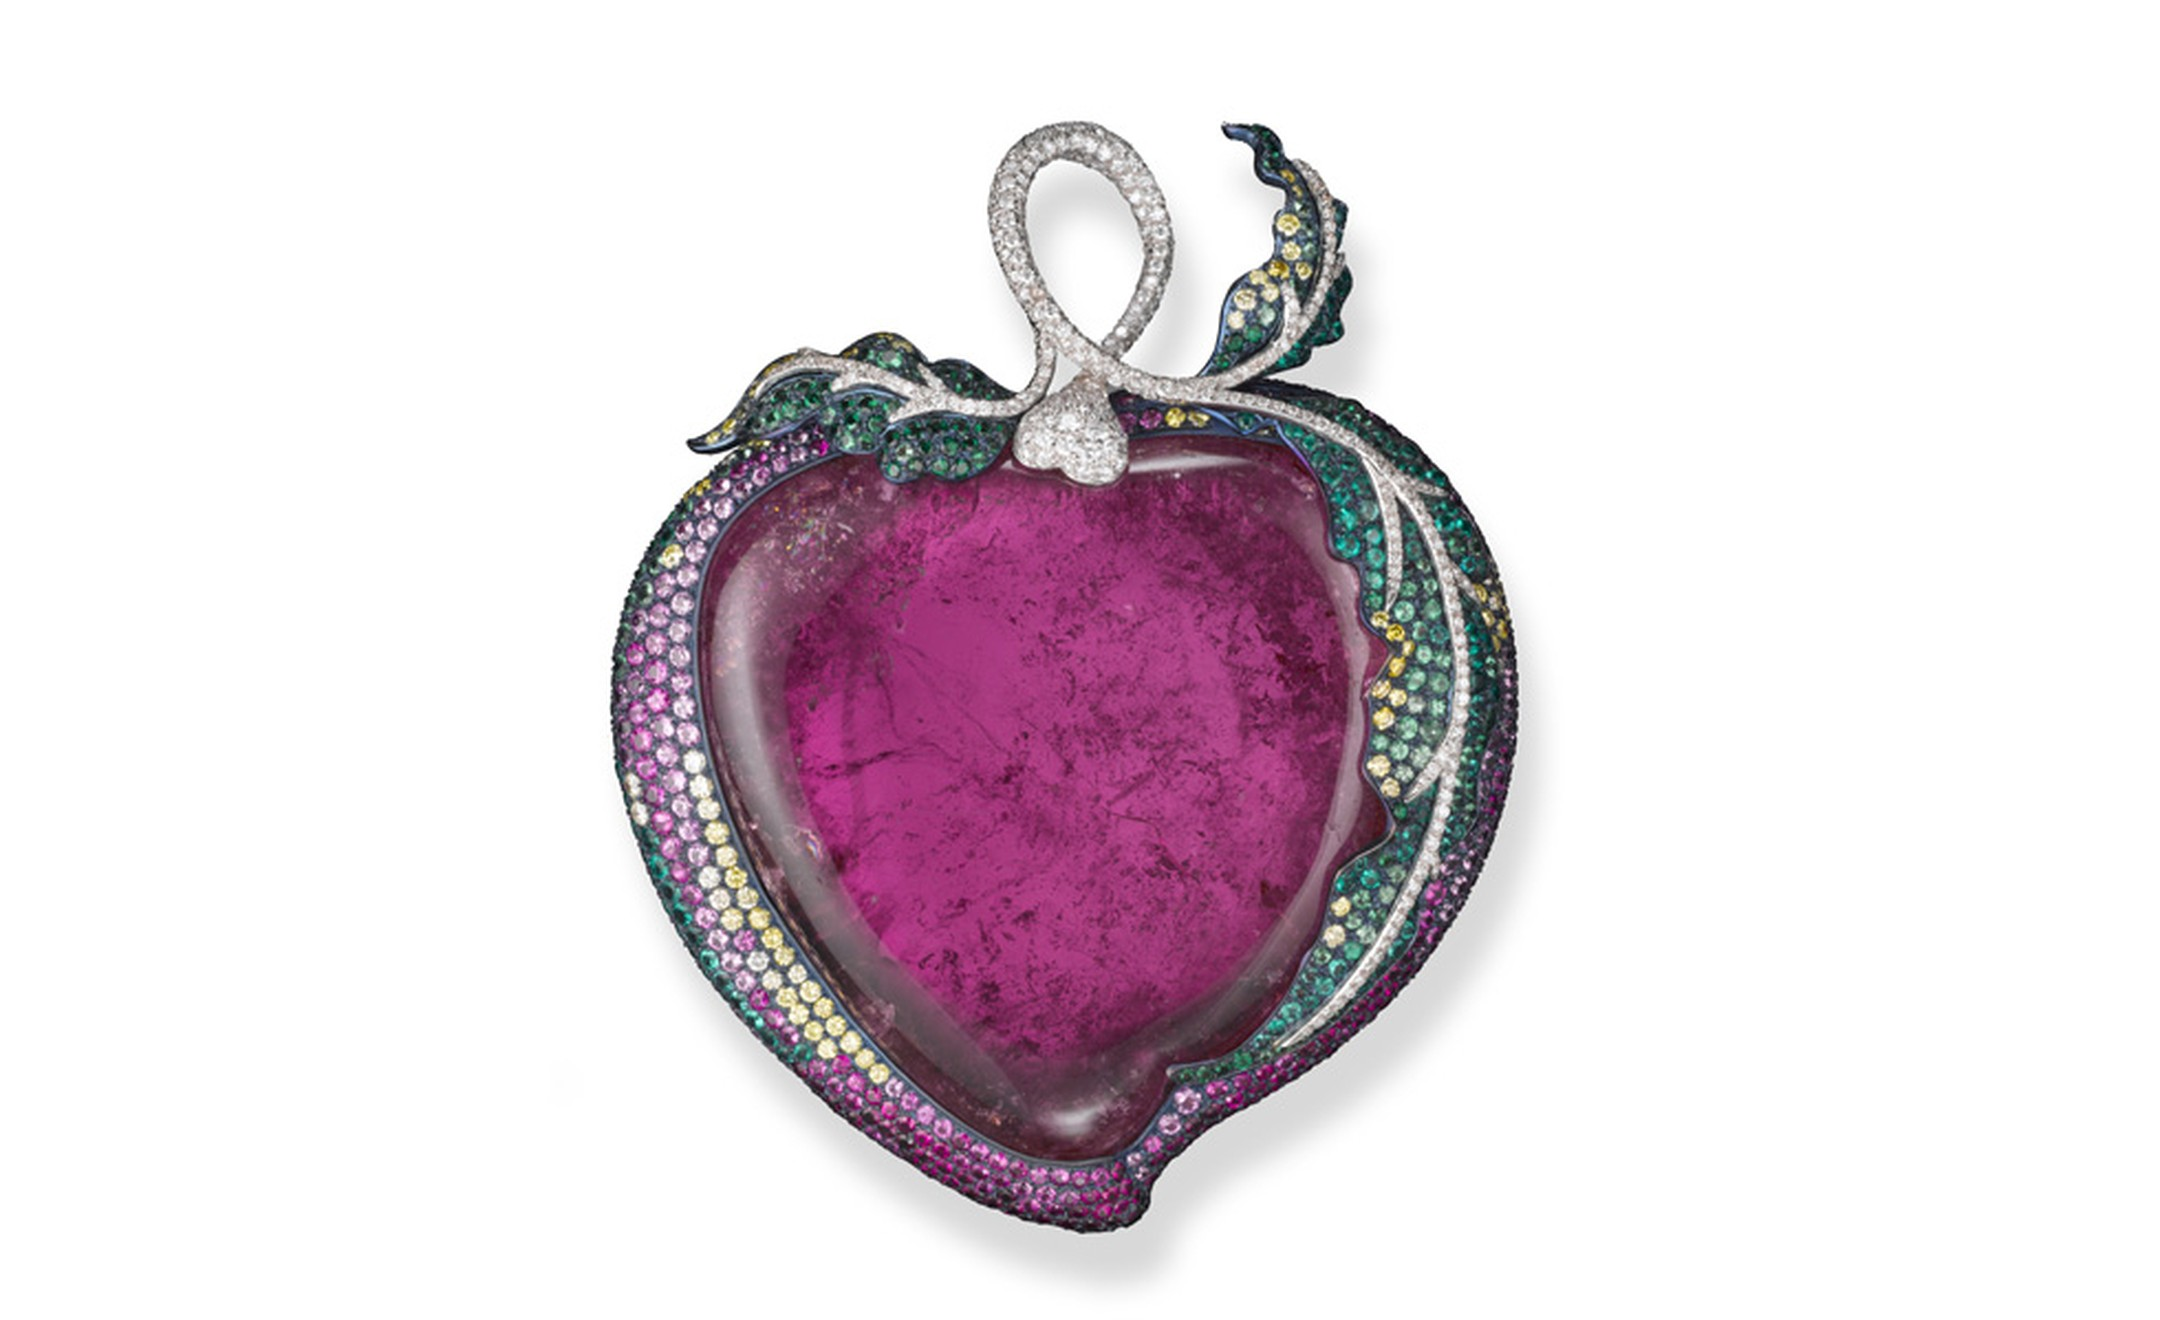 Forbidden Fruit brooch featuring a pink tourmaline, white and yellow diamonds, rubies, emerald, pink sapphires and garnet in platinum and titanium.